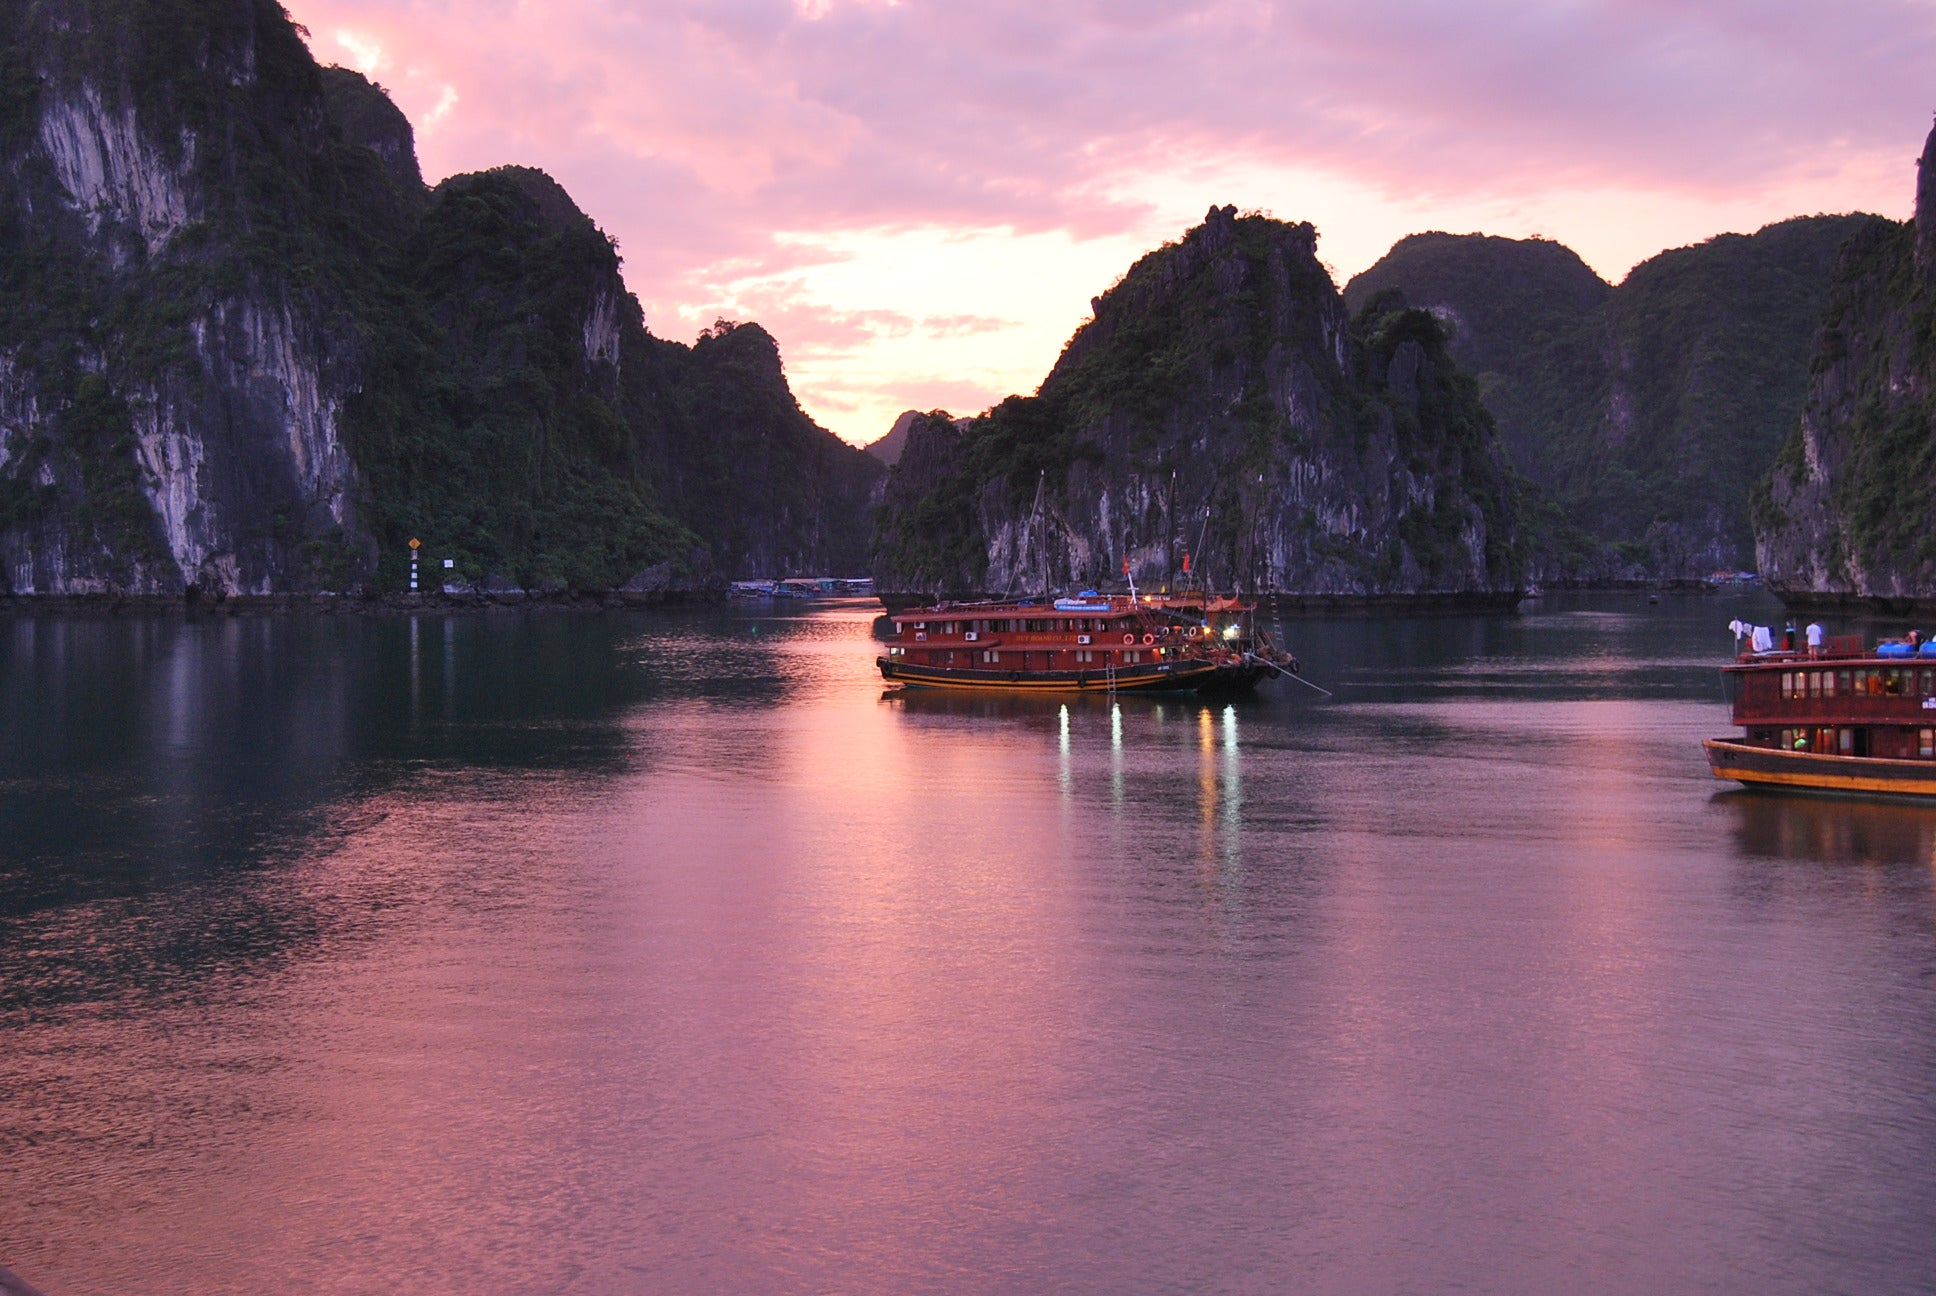 Color rosa en Bahia de Halong - Halong Bay